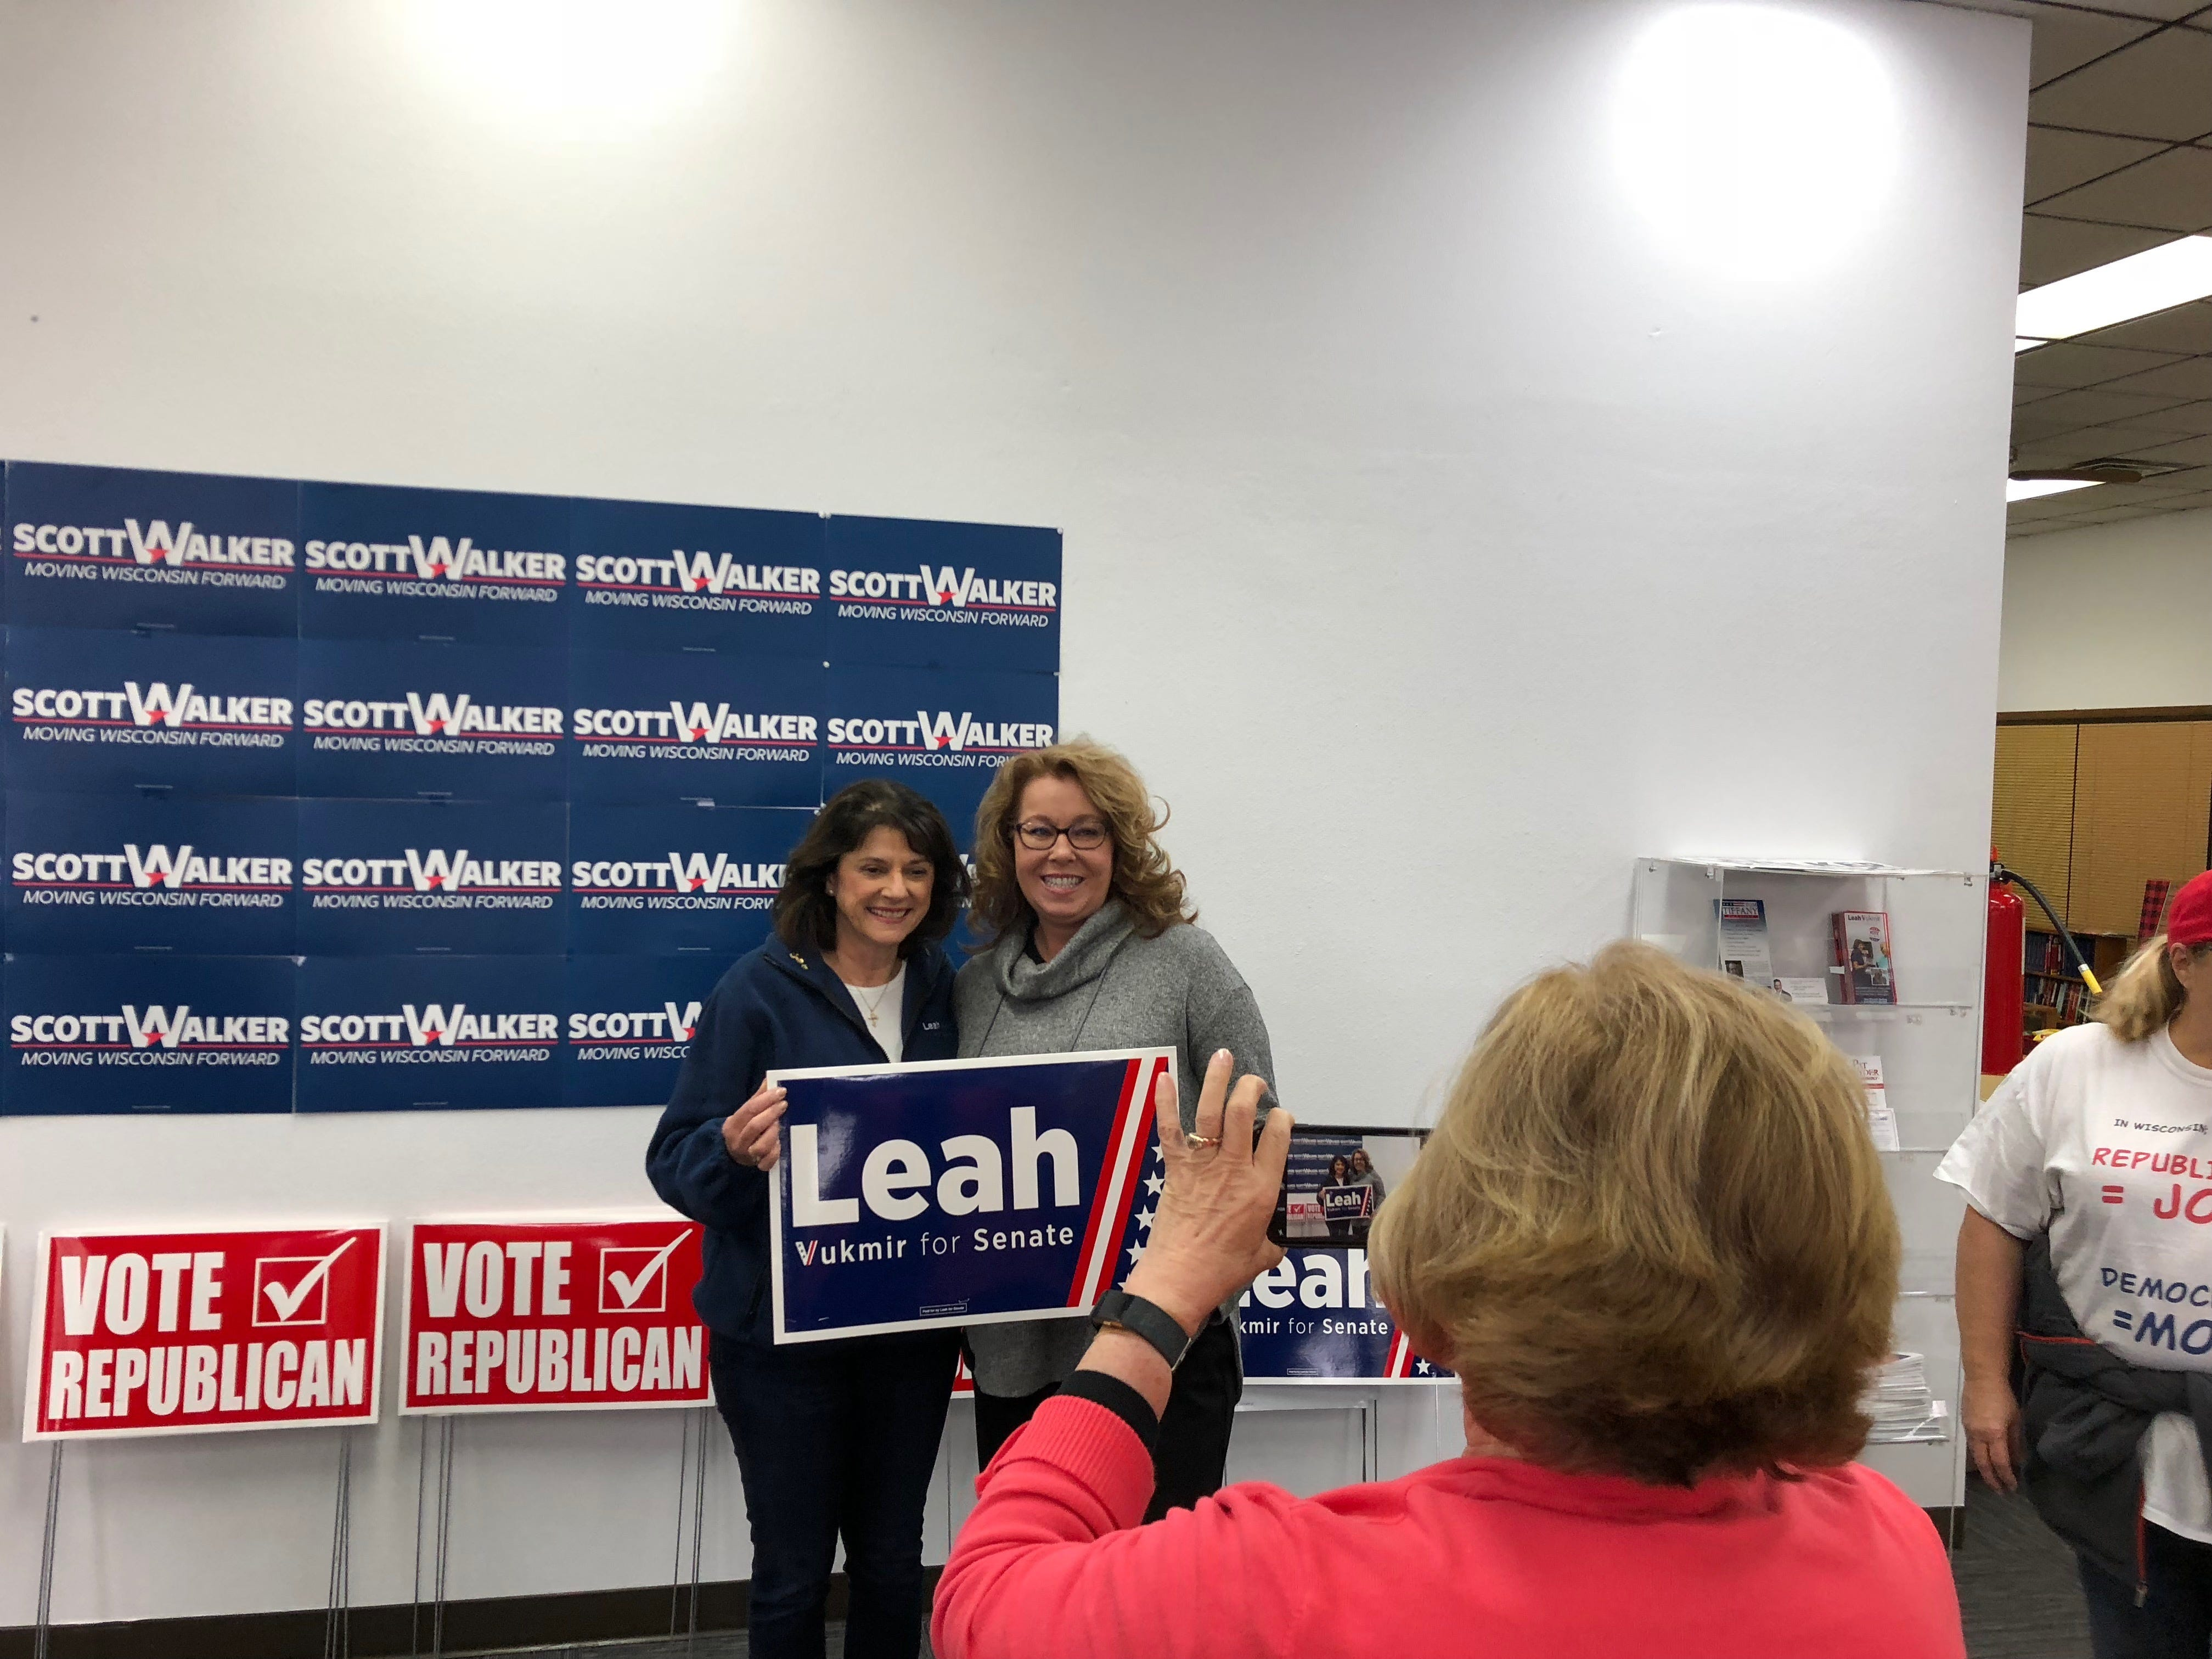 U.S. Senate hopeful Leah Vukmir poses for photos with supporters in Weston on Nov. 5, 2018, during her final home stretch of campaign visits.